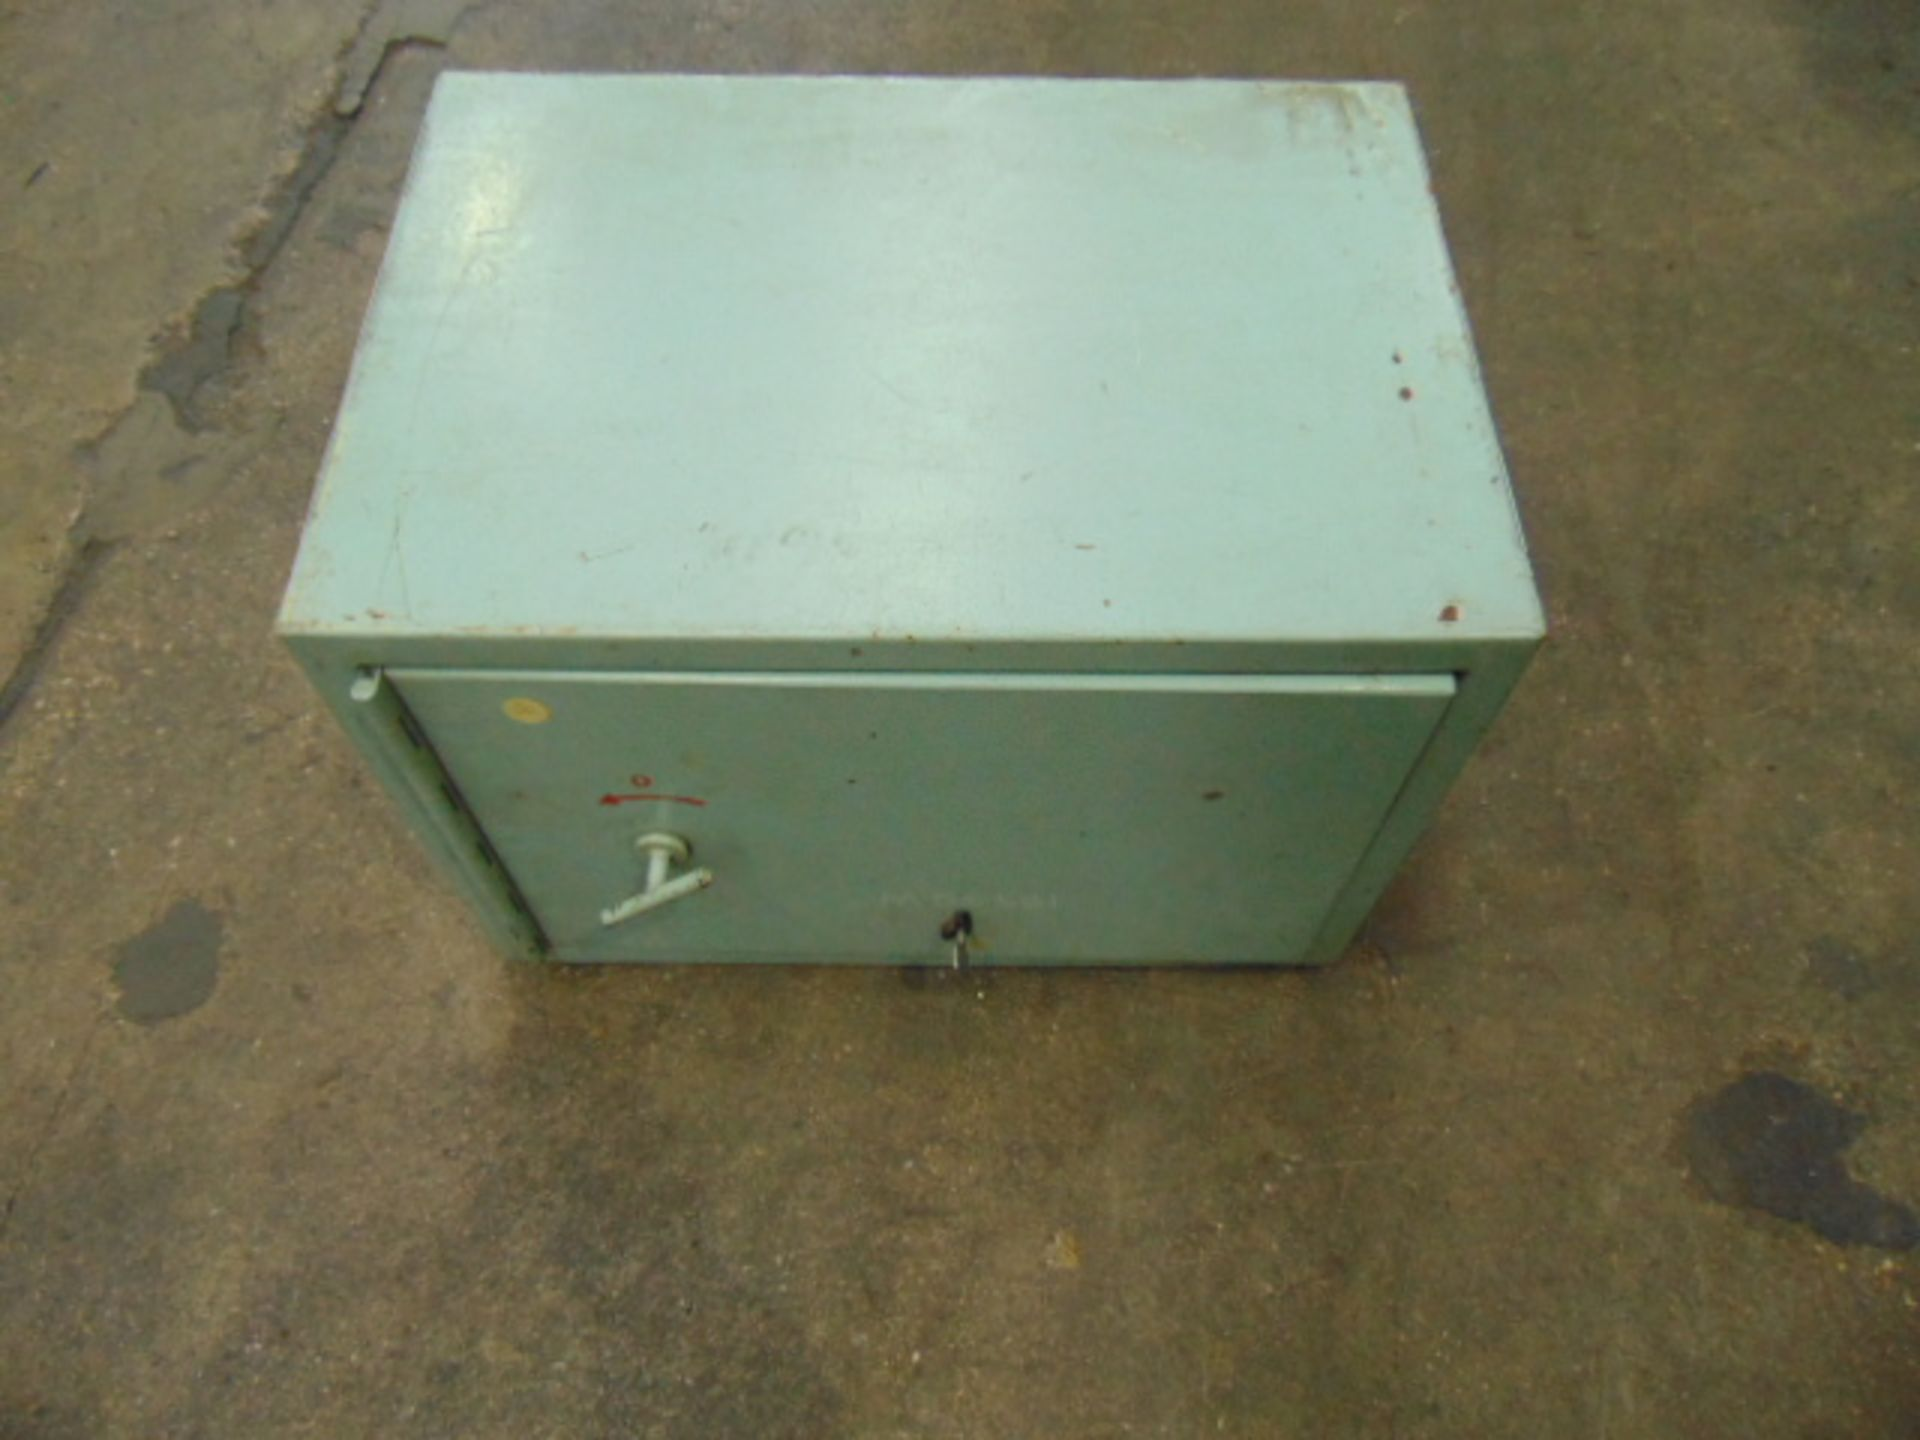 Lotto 26401 - Lockable Safe Box